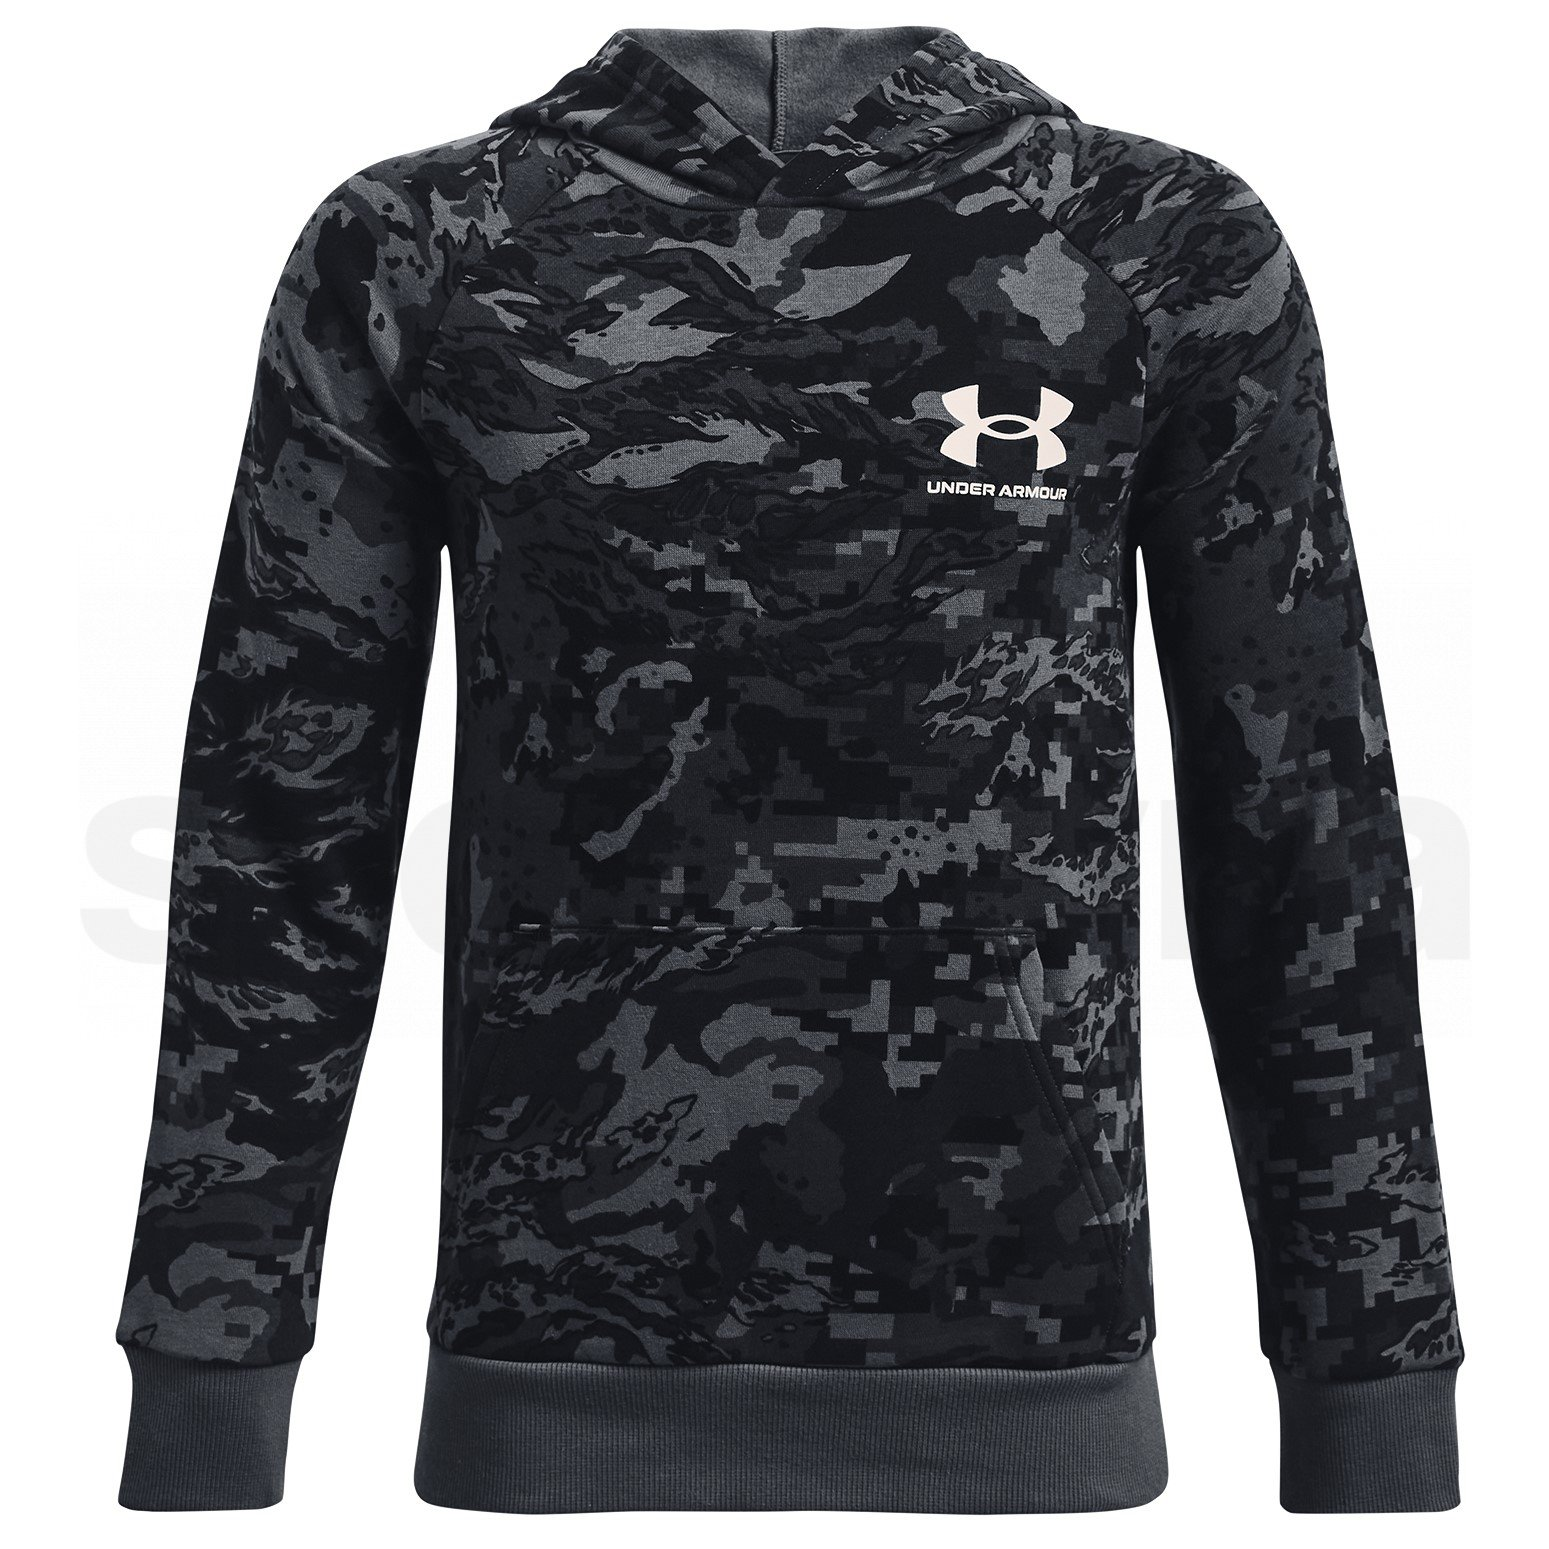 1366305-012_Under Armour Rival Flc ABC Camo Hoodie YM